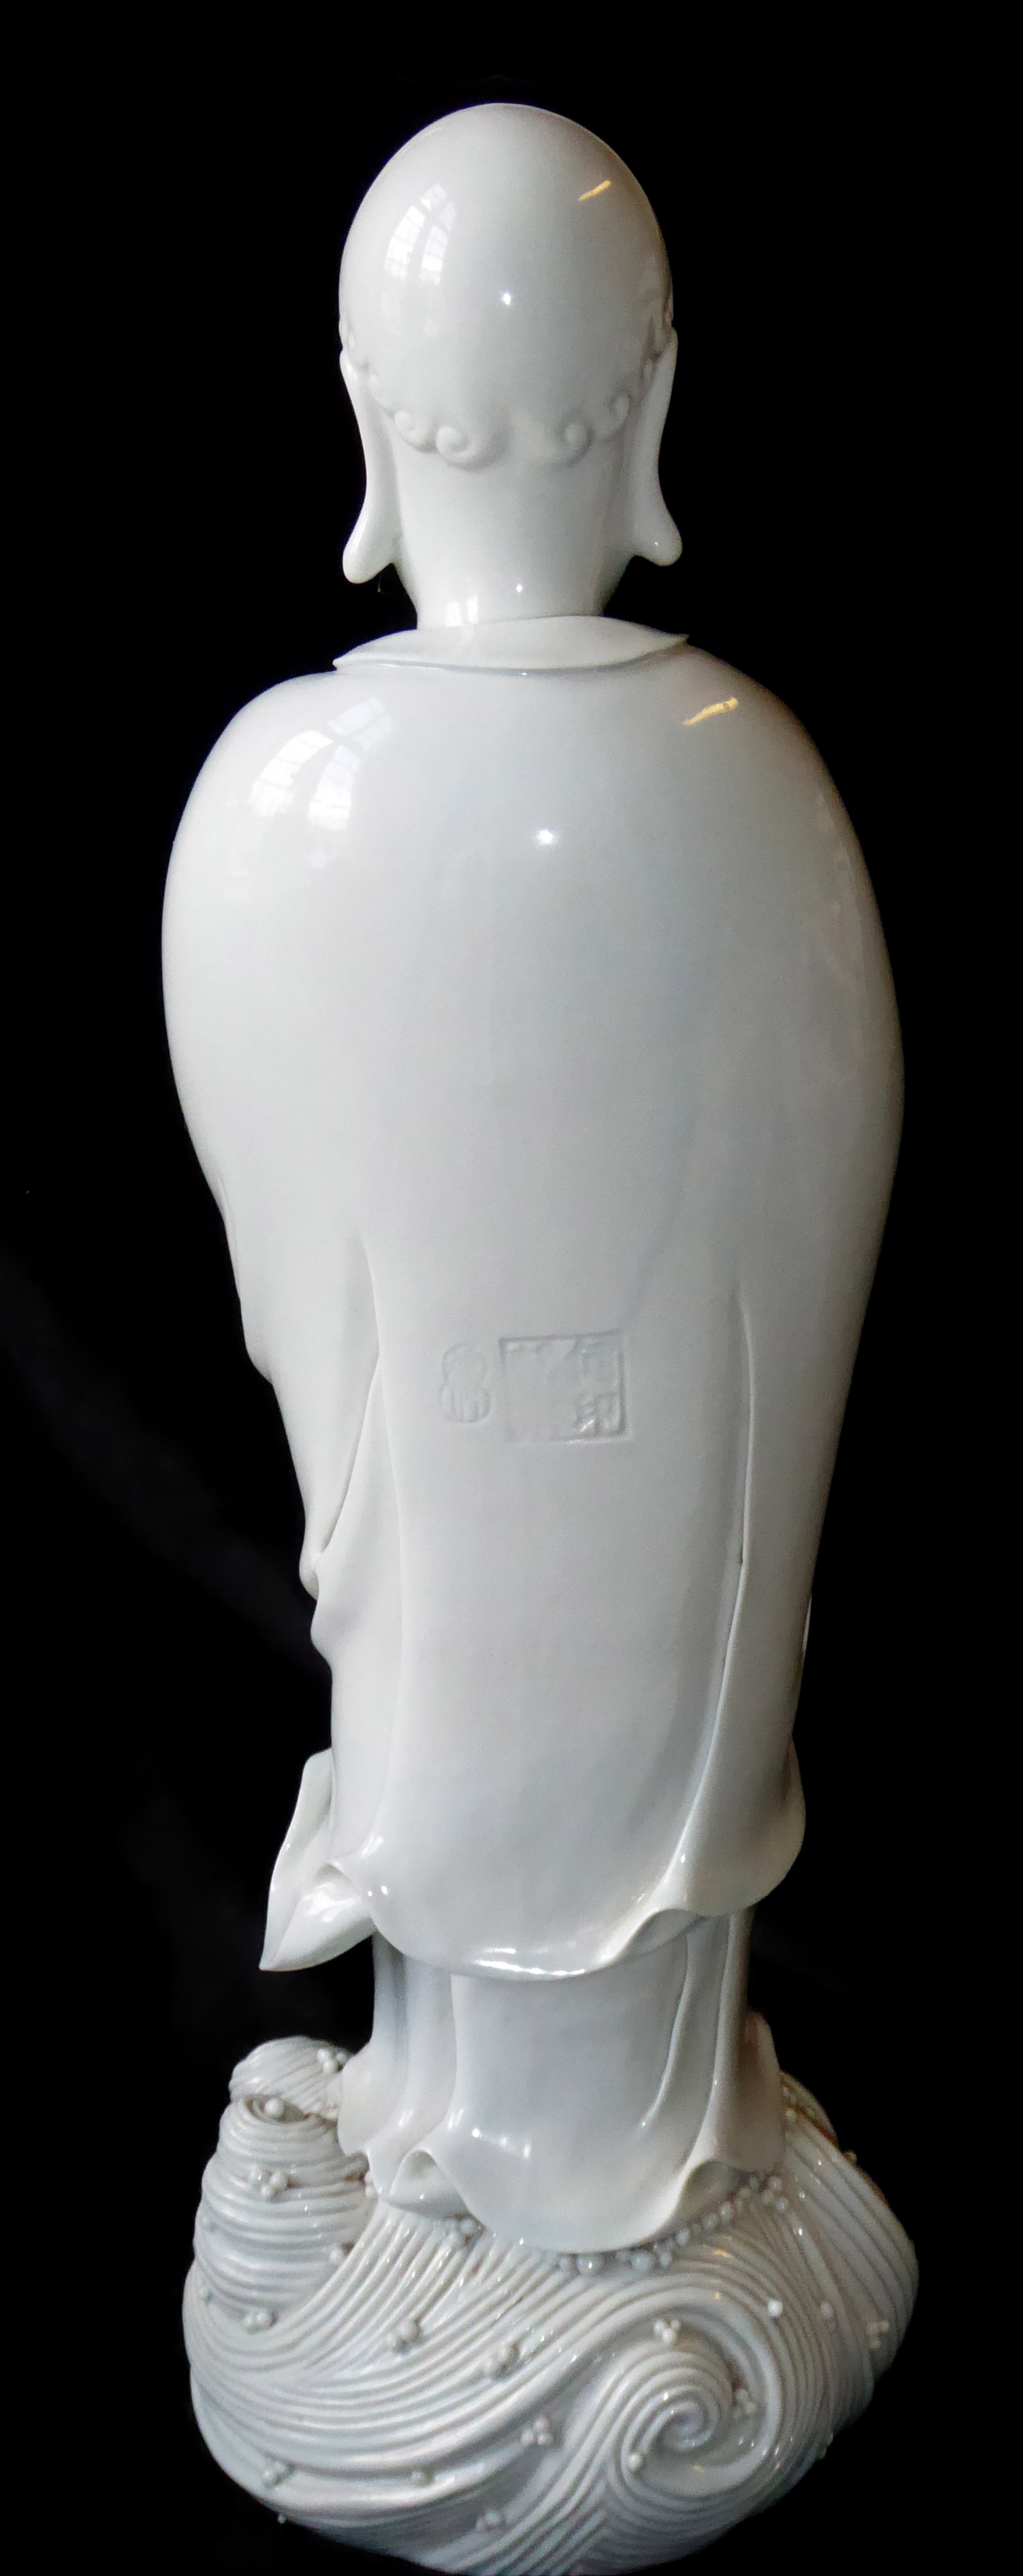 Lot 155 - A CHINESE BLANC DE CHINE PORCELAIN FIGURE OF A SAGE/LOHAN Standing on stylised waves with long